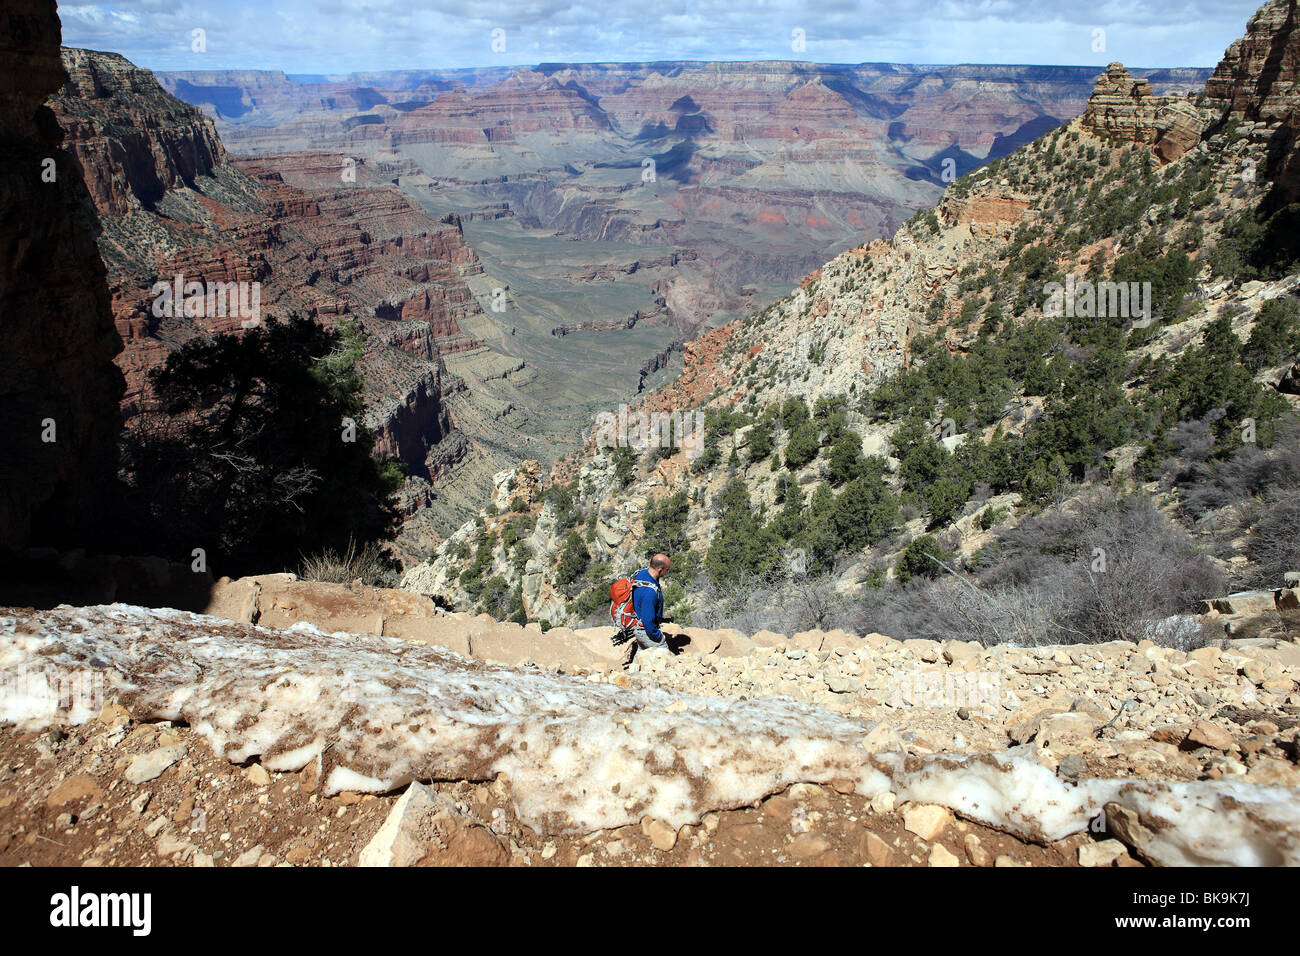 Man walking on the South Kaibab Trail in the Grand Canyon - Stock Image